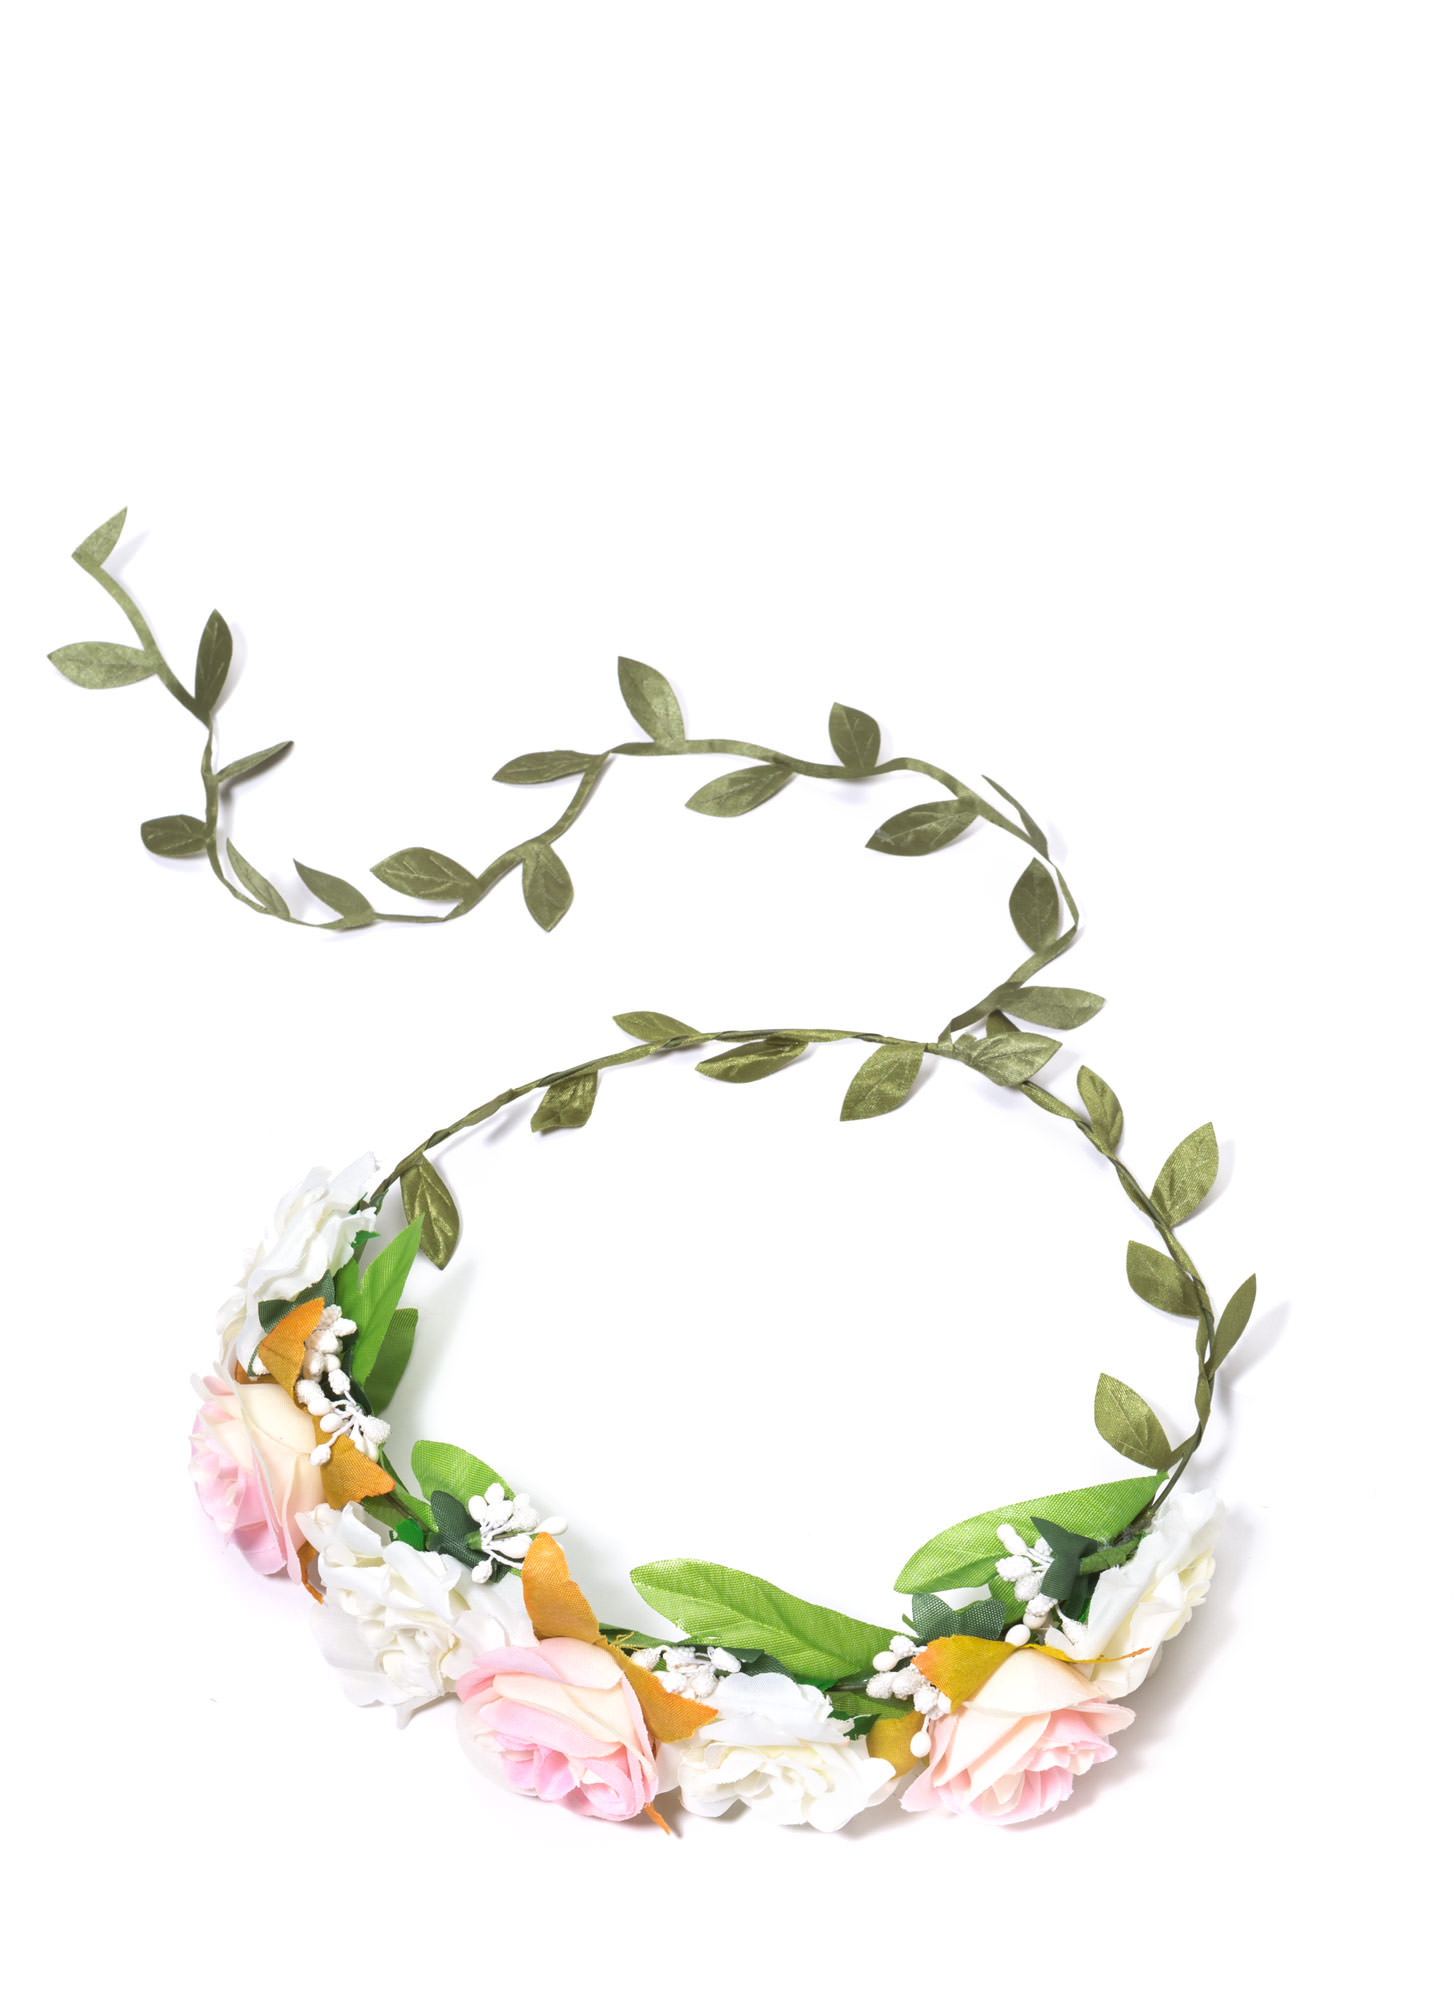 12 Flower Crowns To Wear To Celebrate The 70s Style Resurgence This